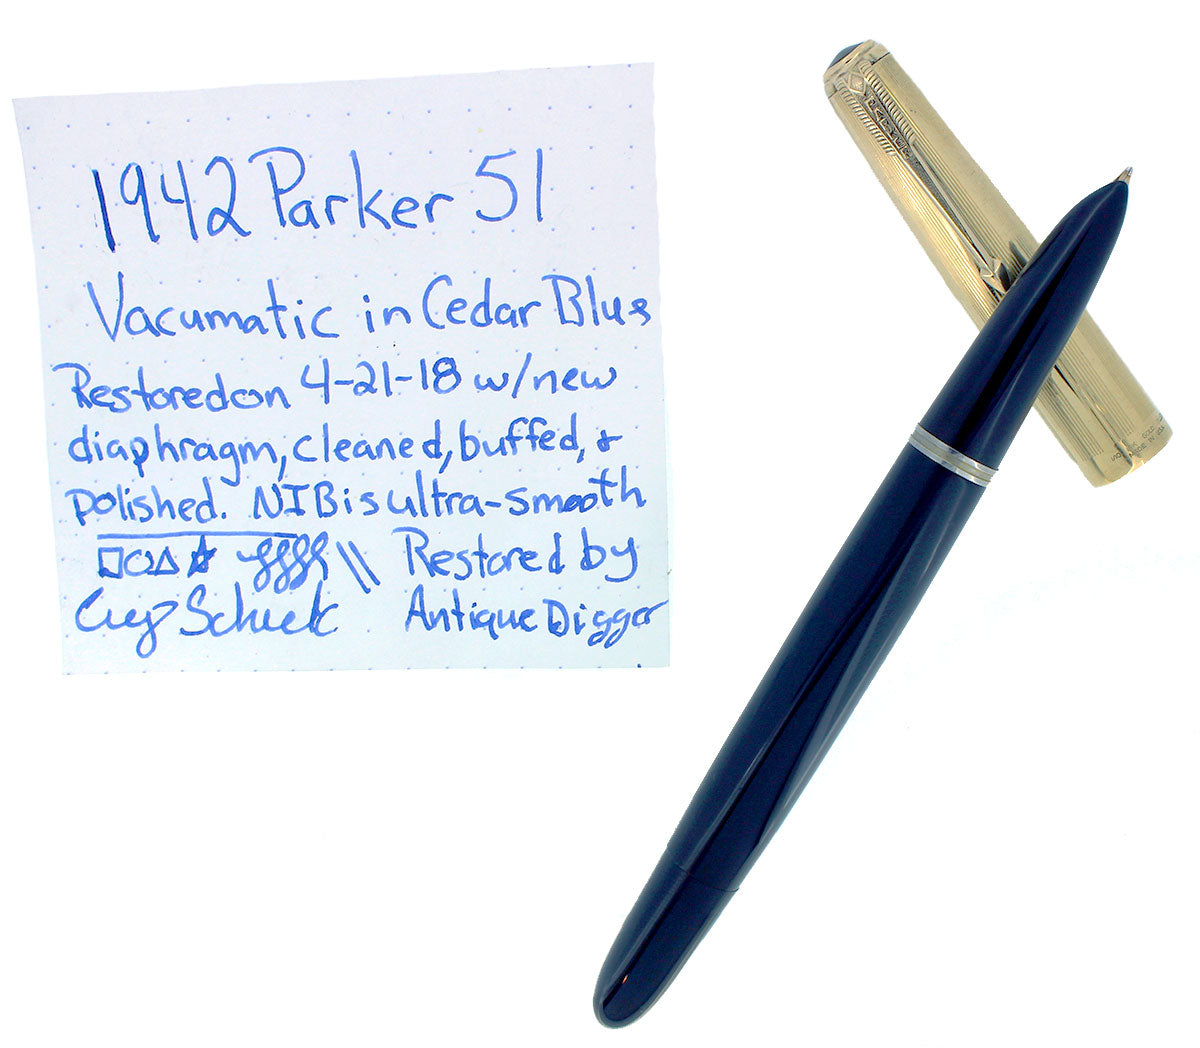 1942 PARKER 51 SINGLE JEWEL CEDAR BLUE VACUMATIC FOUNTAIN PEN RESTORED OFFERED BY ANTIQUE DIGGER